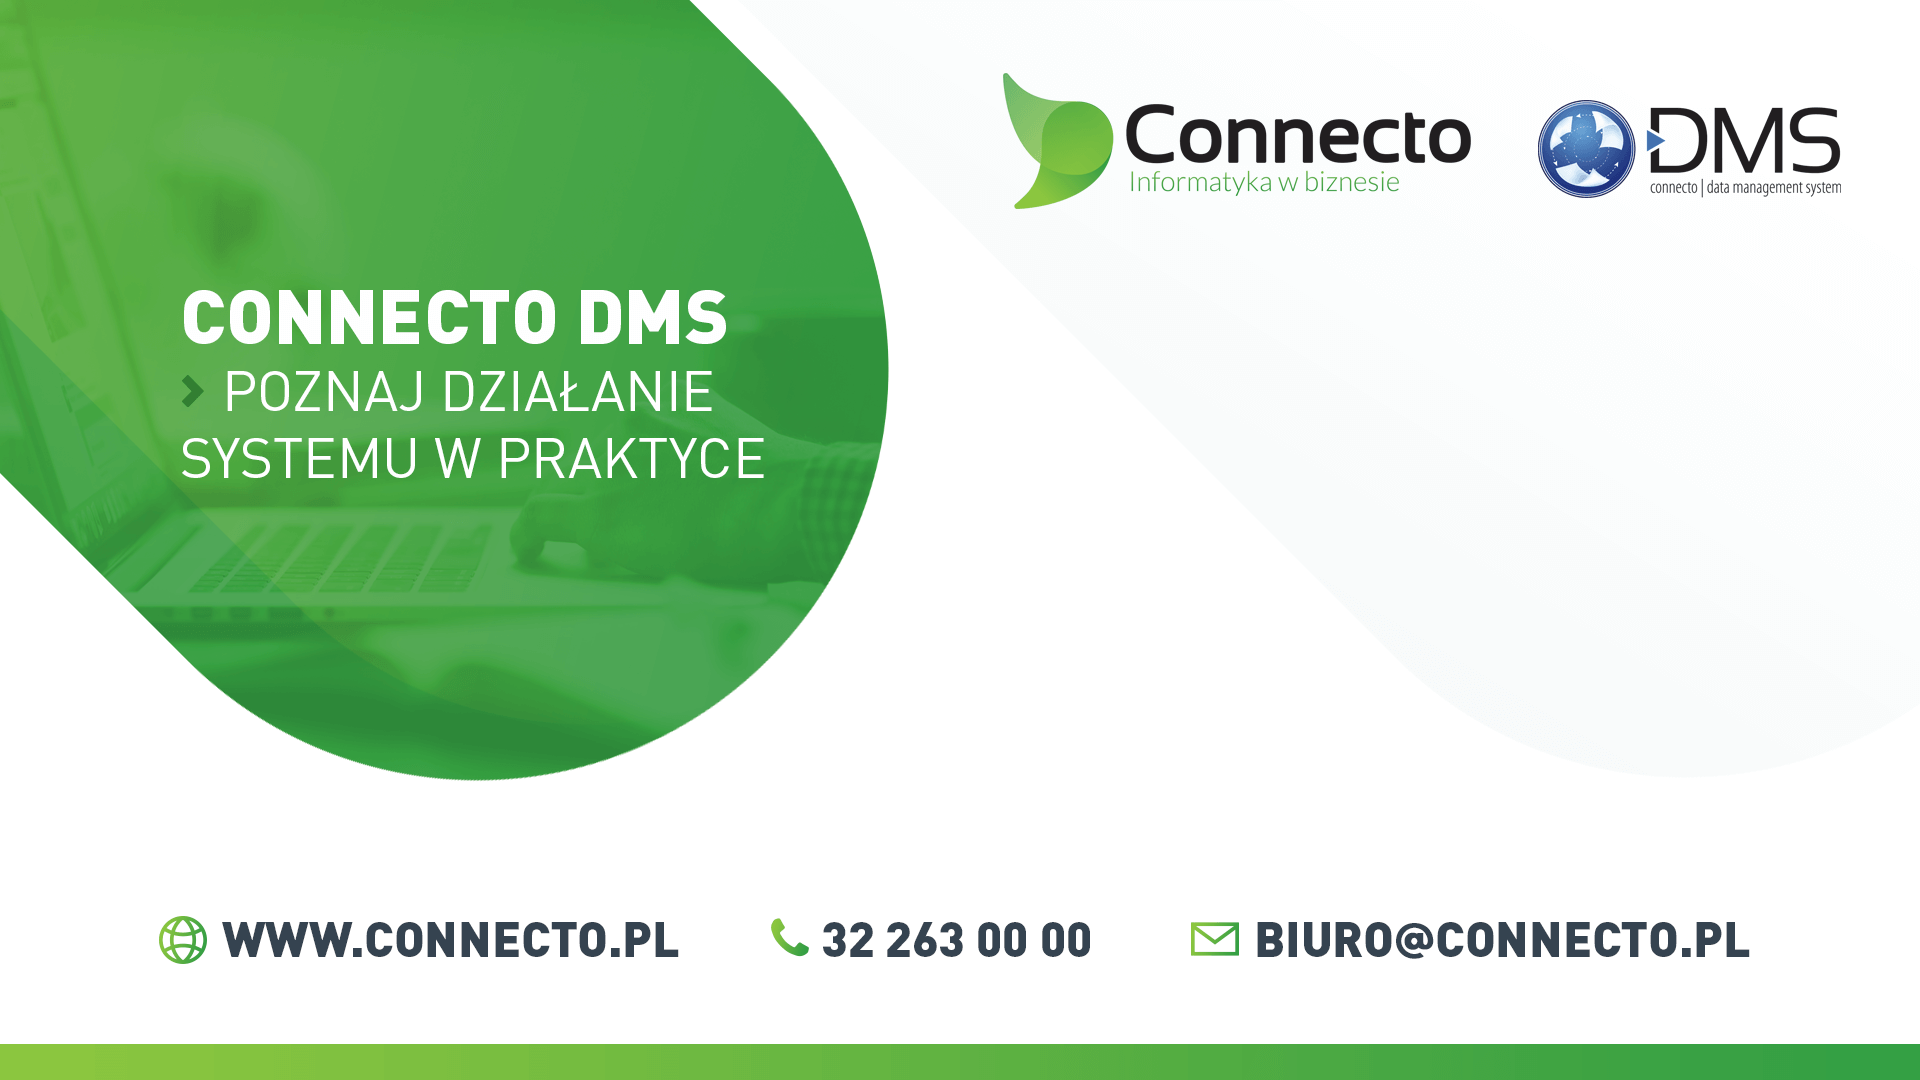 Connecto DMS Youtube